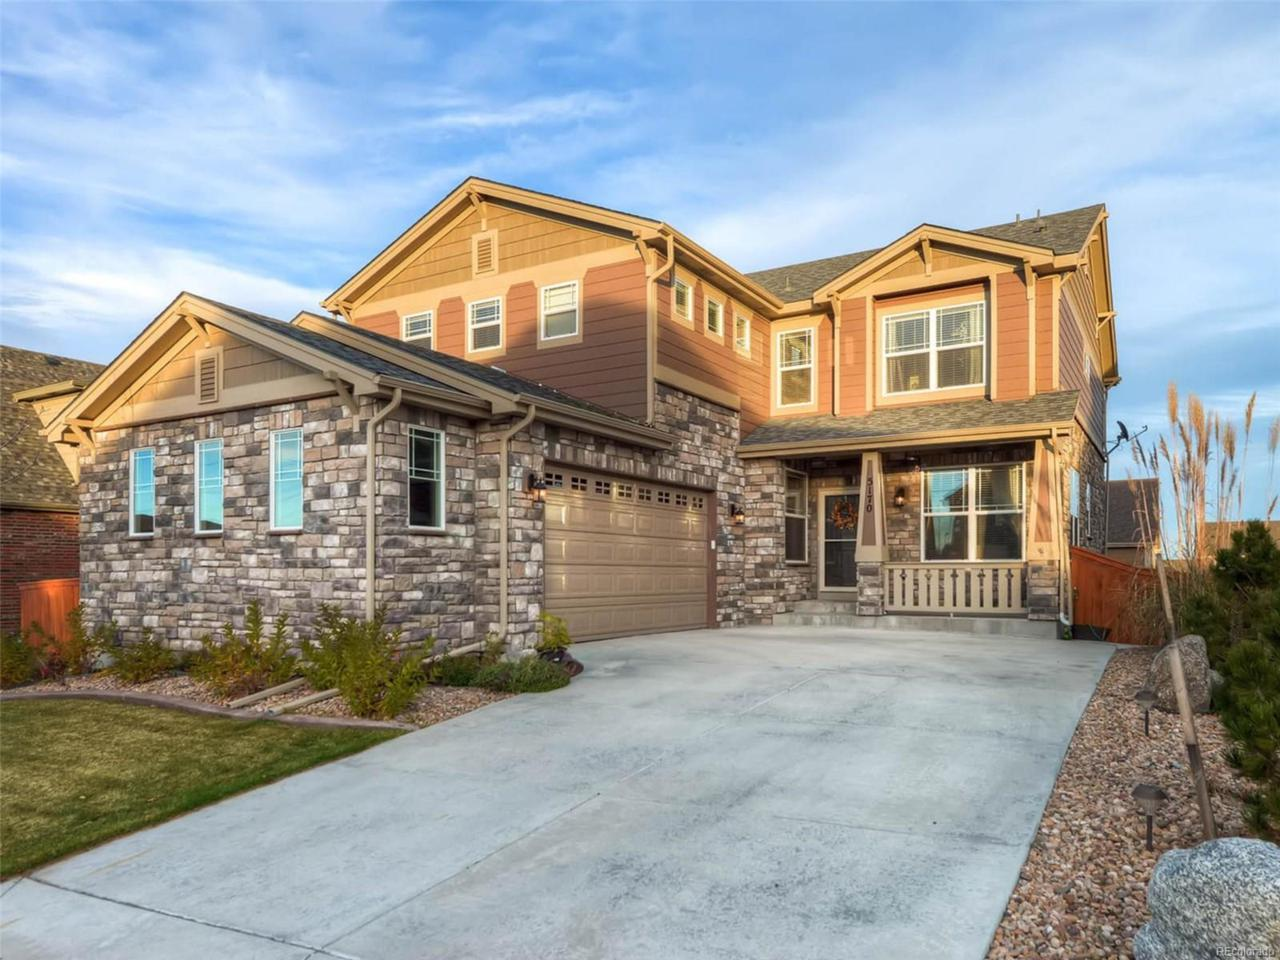 5170 S Elk Street, Aurora, CO 80016 (MLS #9300837) :: 8z Real Estate